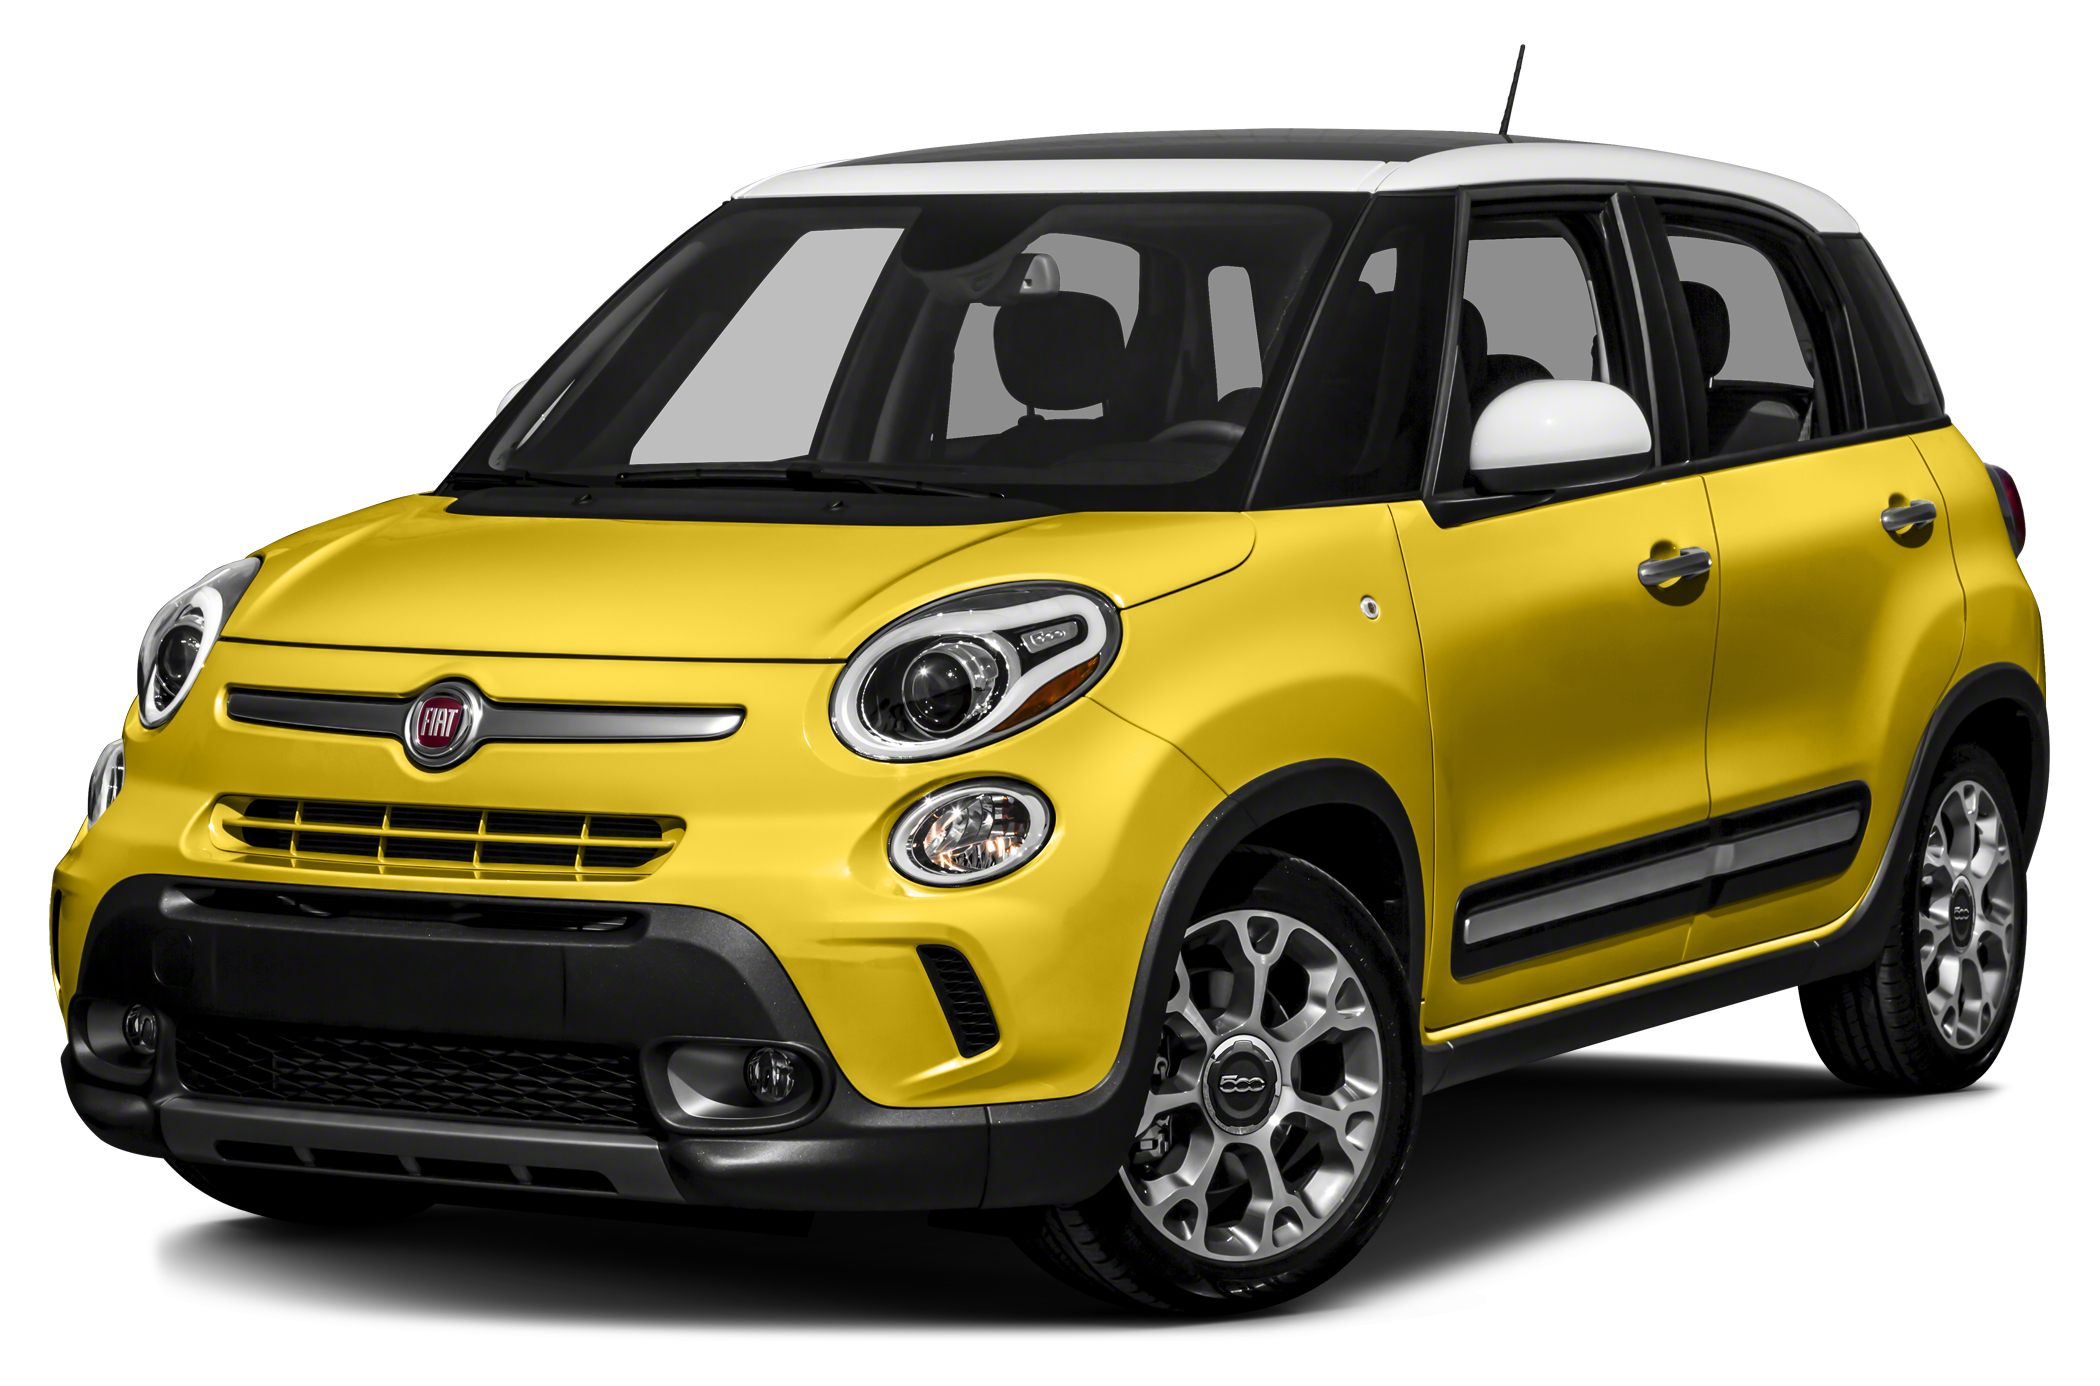 2014 Fiat 500L Trekking Hatchback for sale in Victorville for $18,179 with 0 miles.